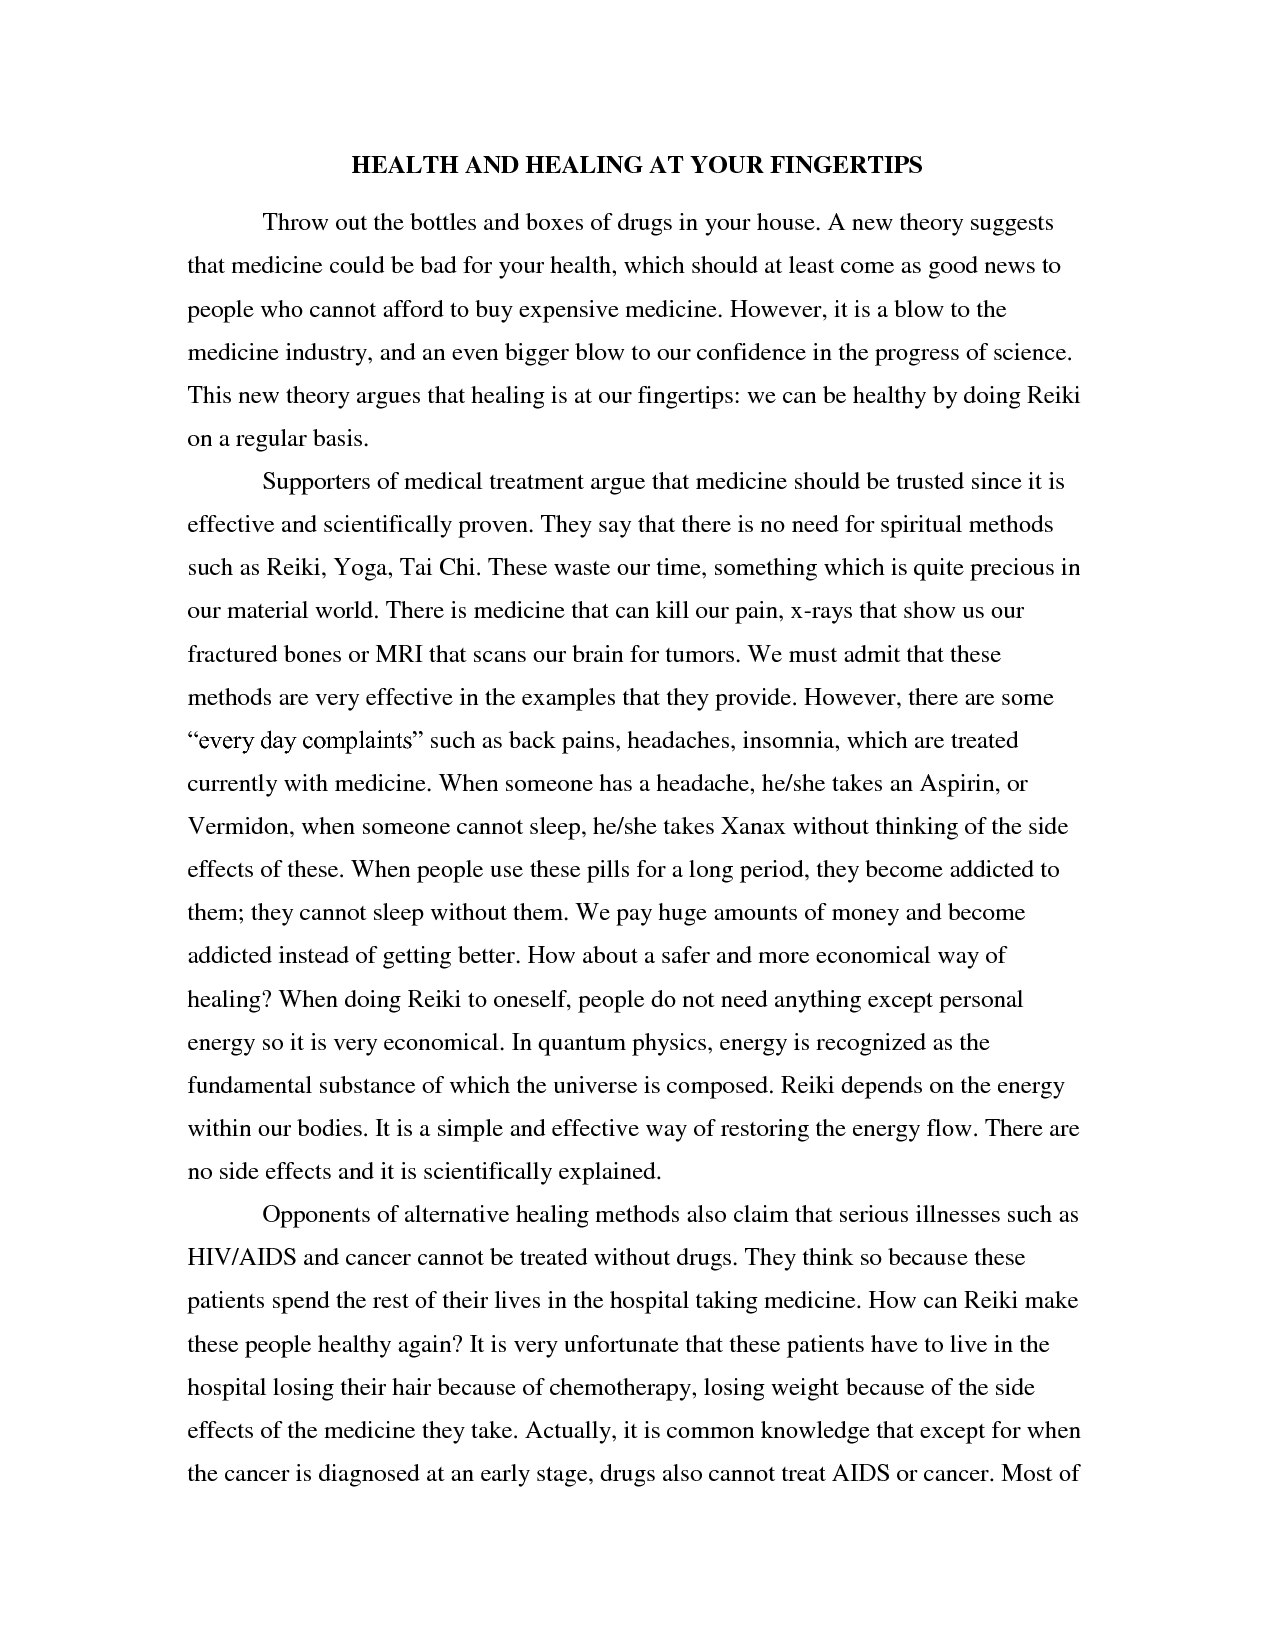 016 Mentor Argument Essay Page How To Write Good Argumentatives Astounding Argumentative Examples For High School Tagalog Topics Middle Students Format Full